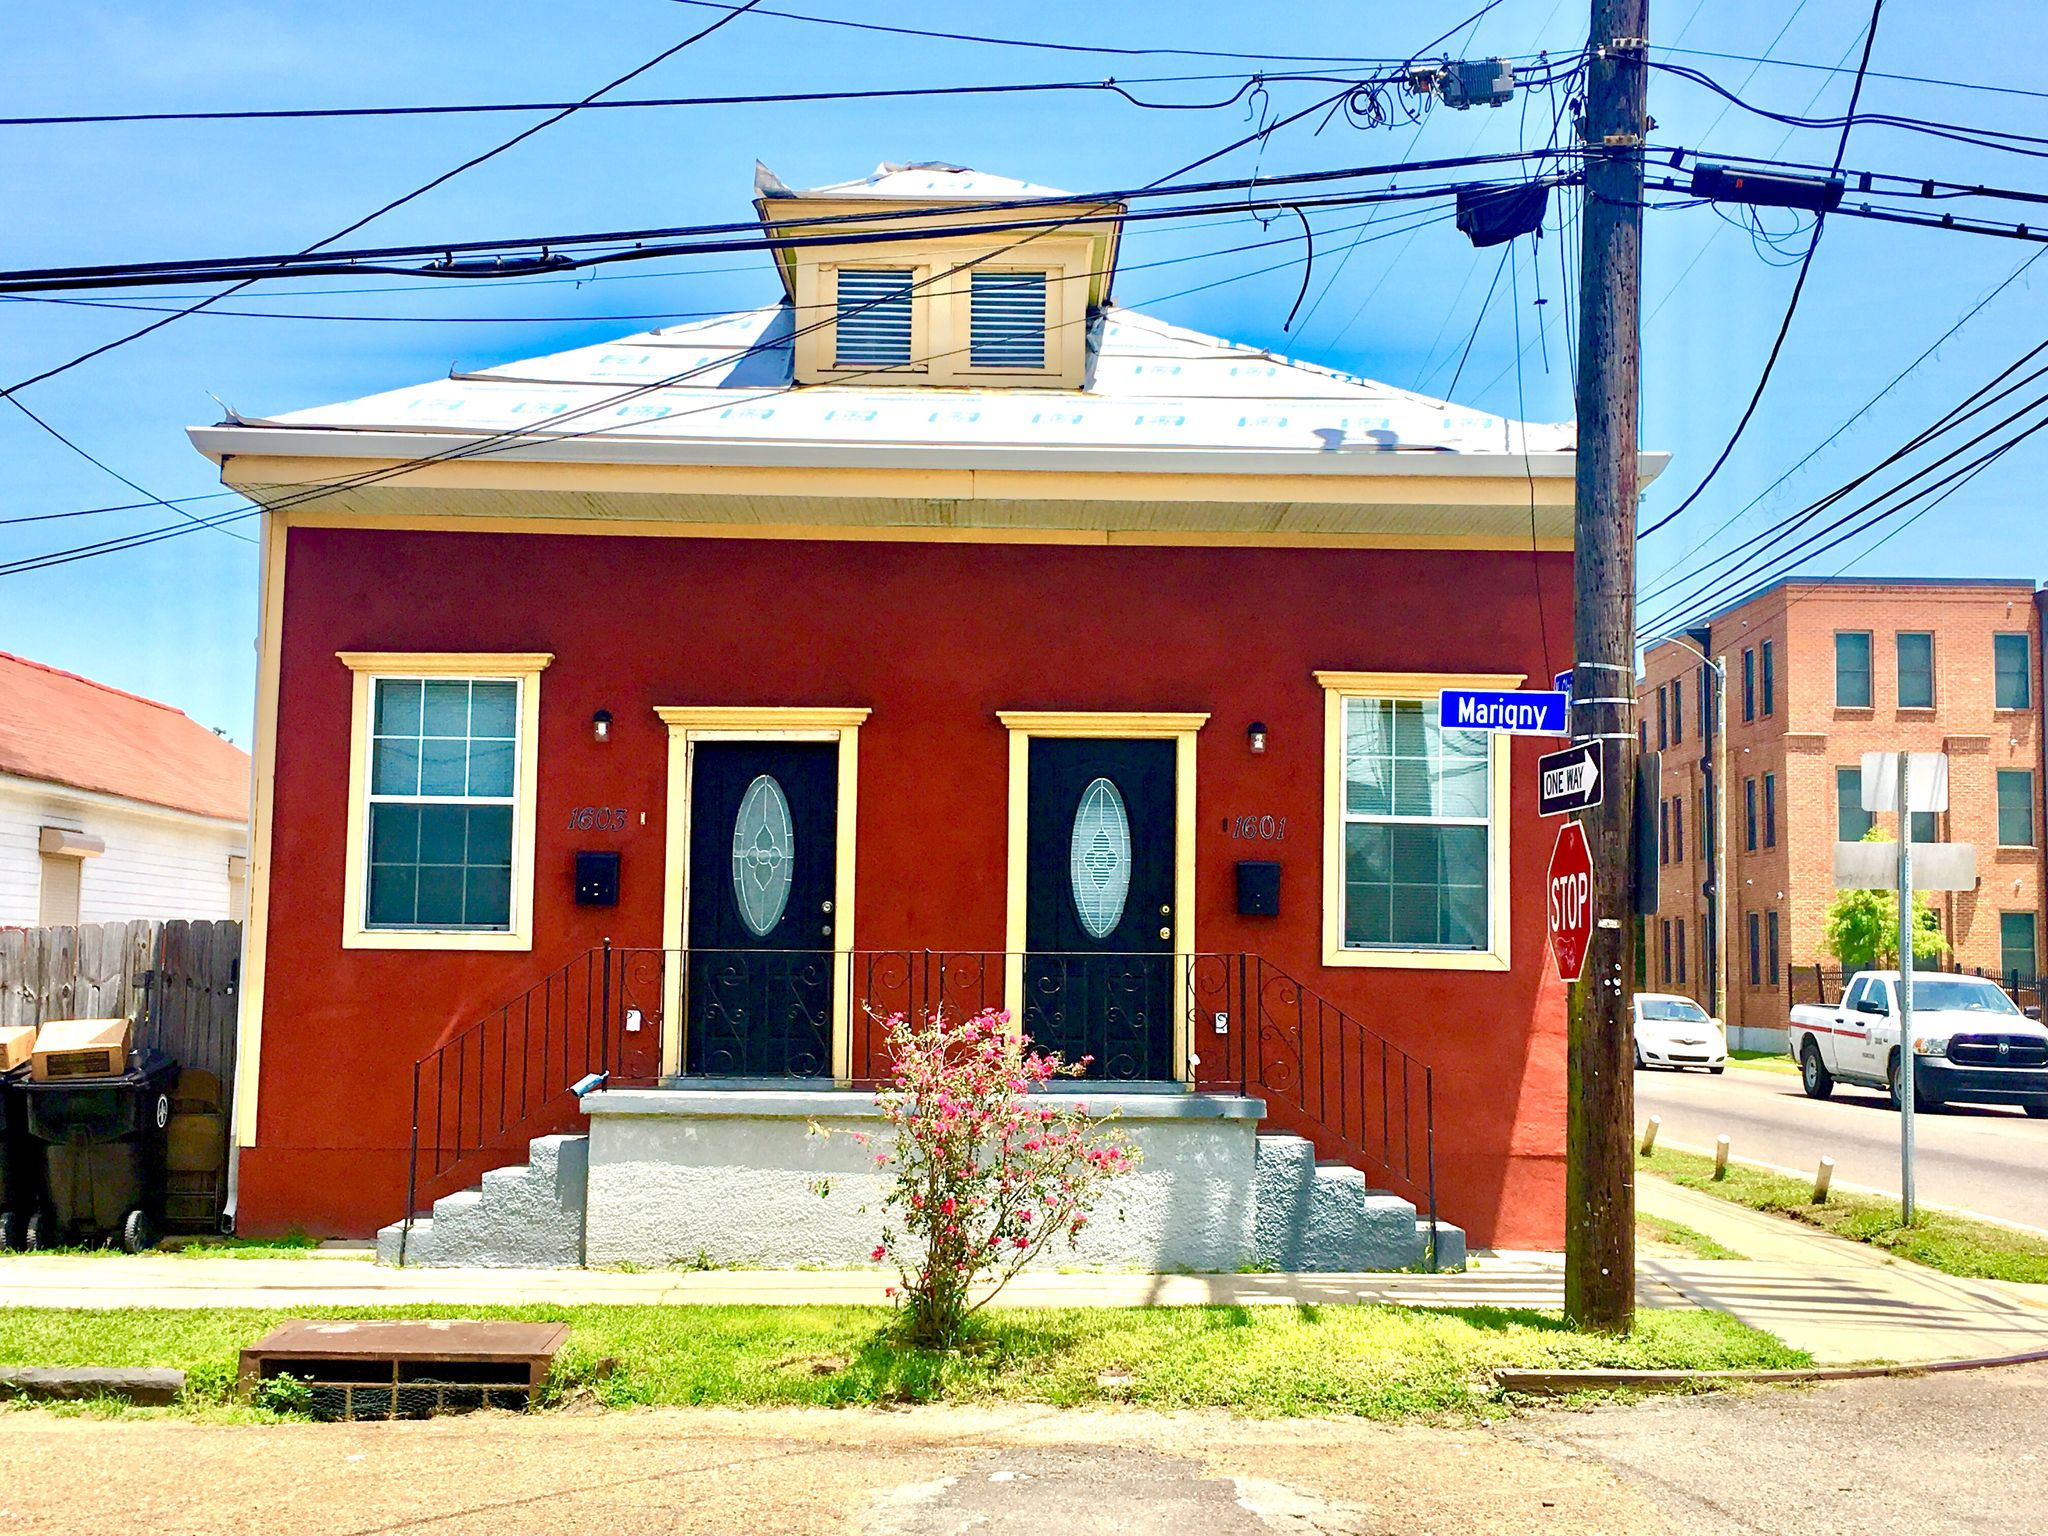 1601 marigny st new orleans la 70117 estimate and home details 1601 marigny st sciox Image collections